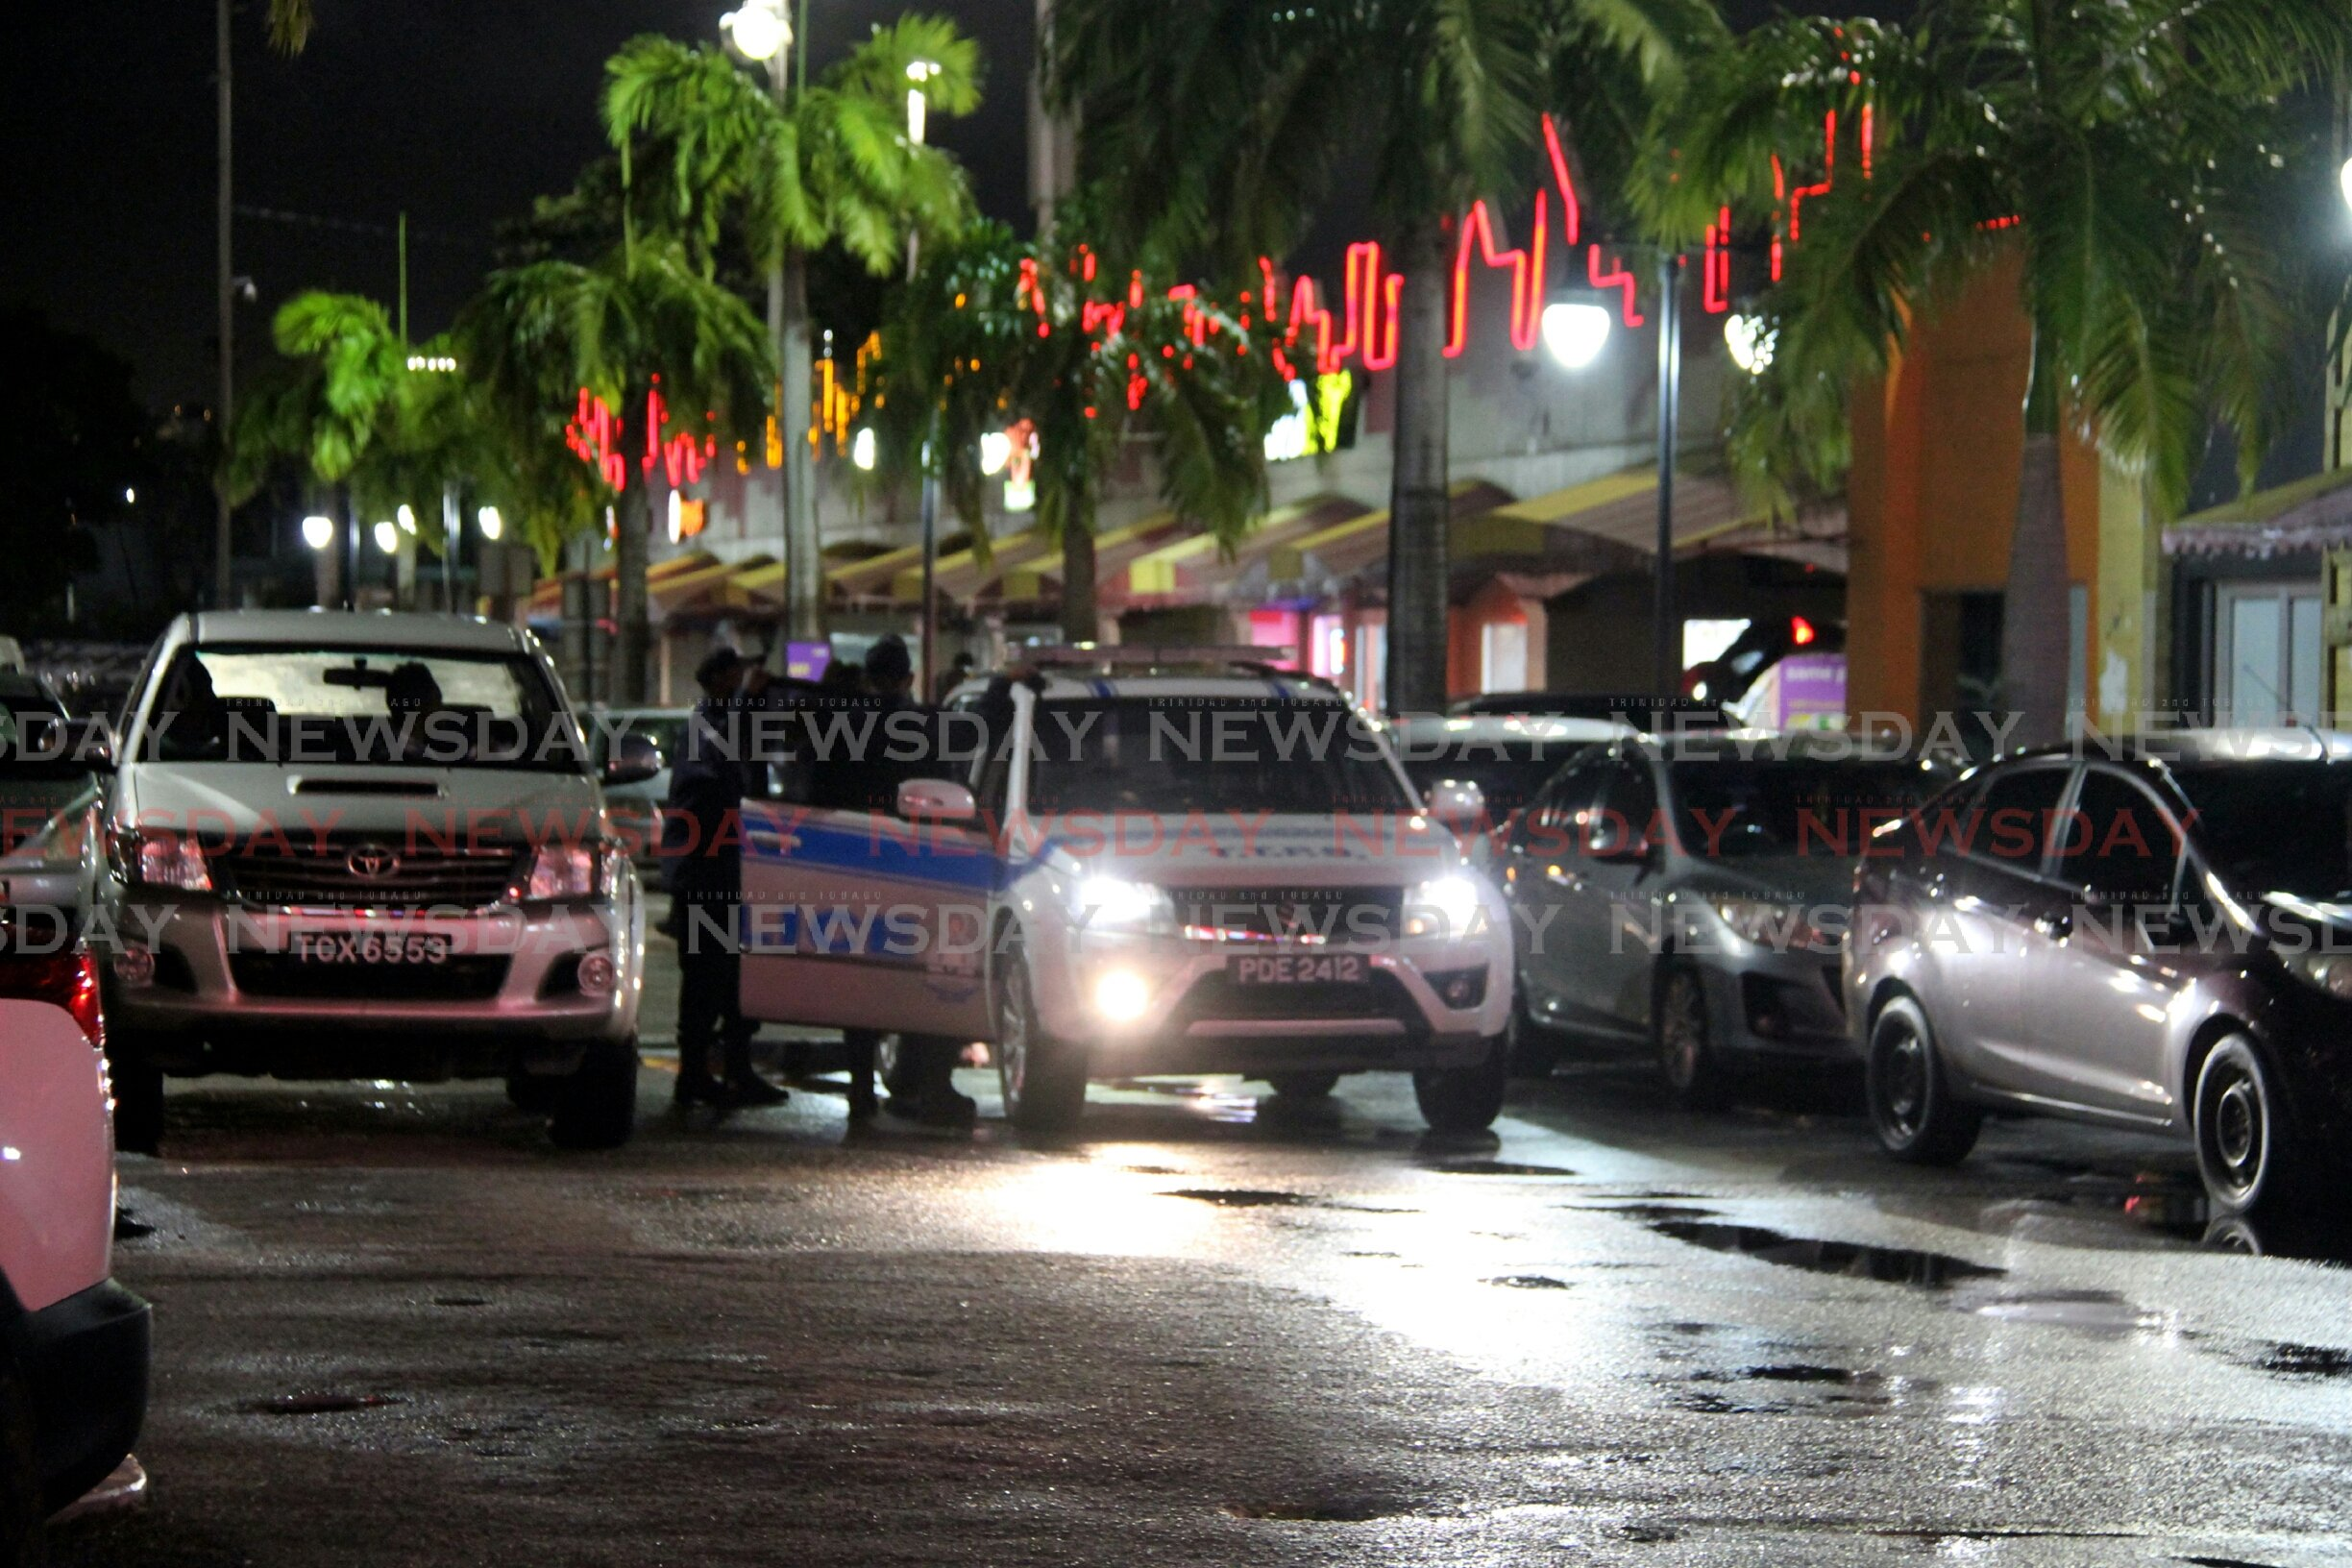 Police at the scene of a shooting at Movietowne, Port of Spain.  Photo by Sureash Cholai